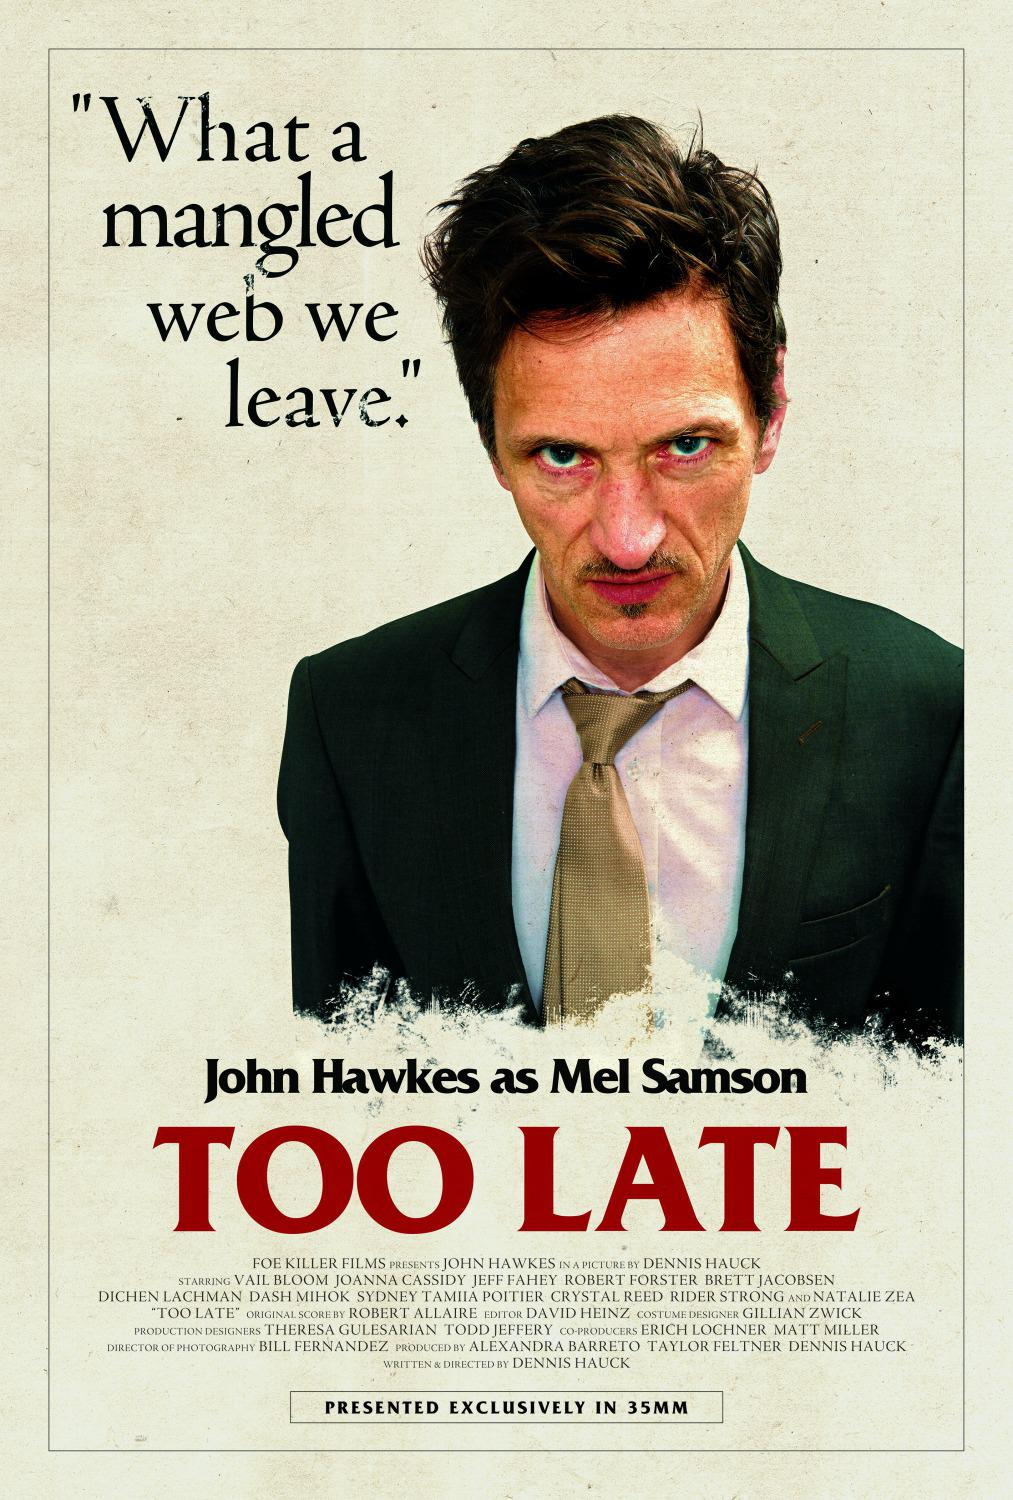 Troppo Tardi - Too Late - John Hawkes as Mel Samson